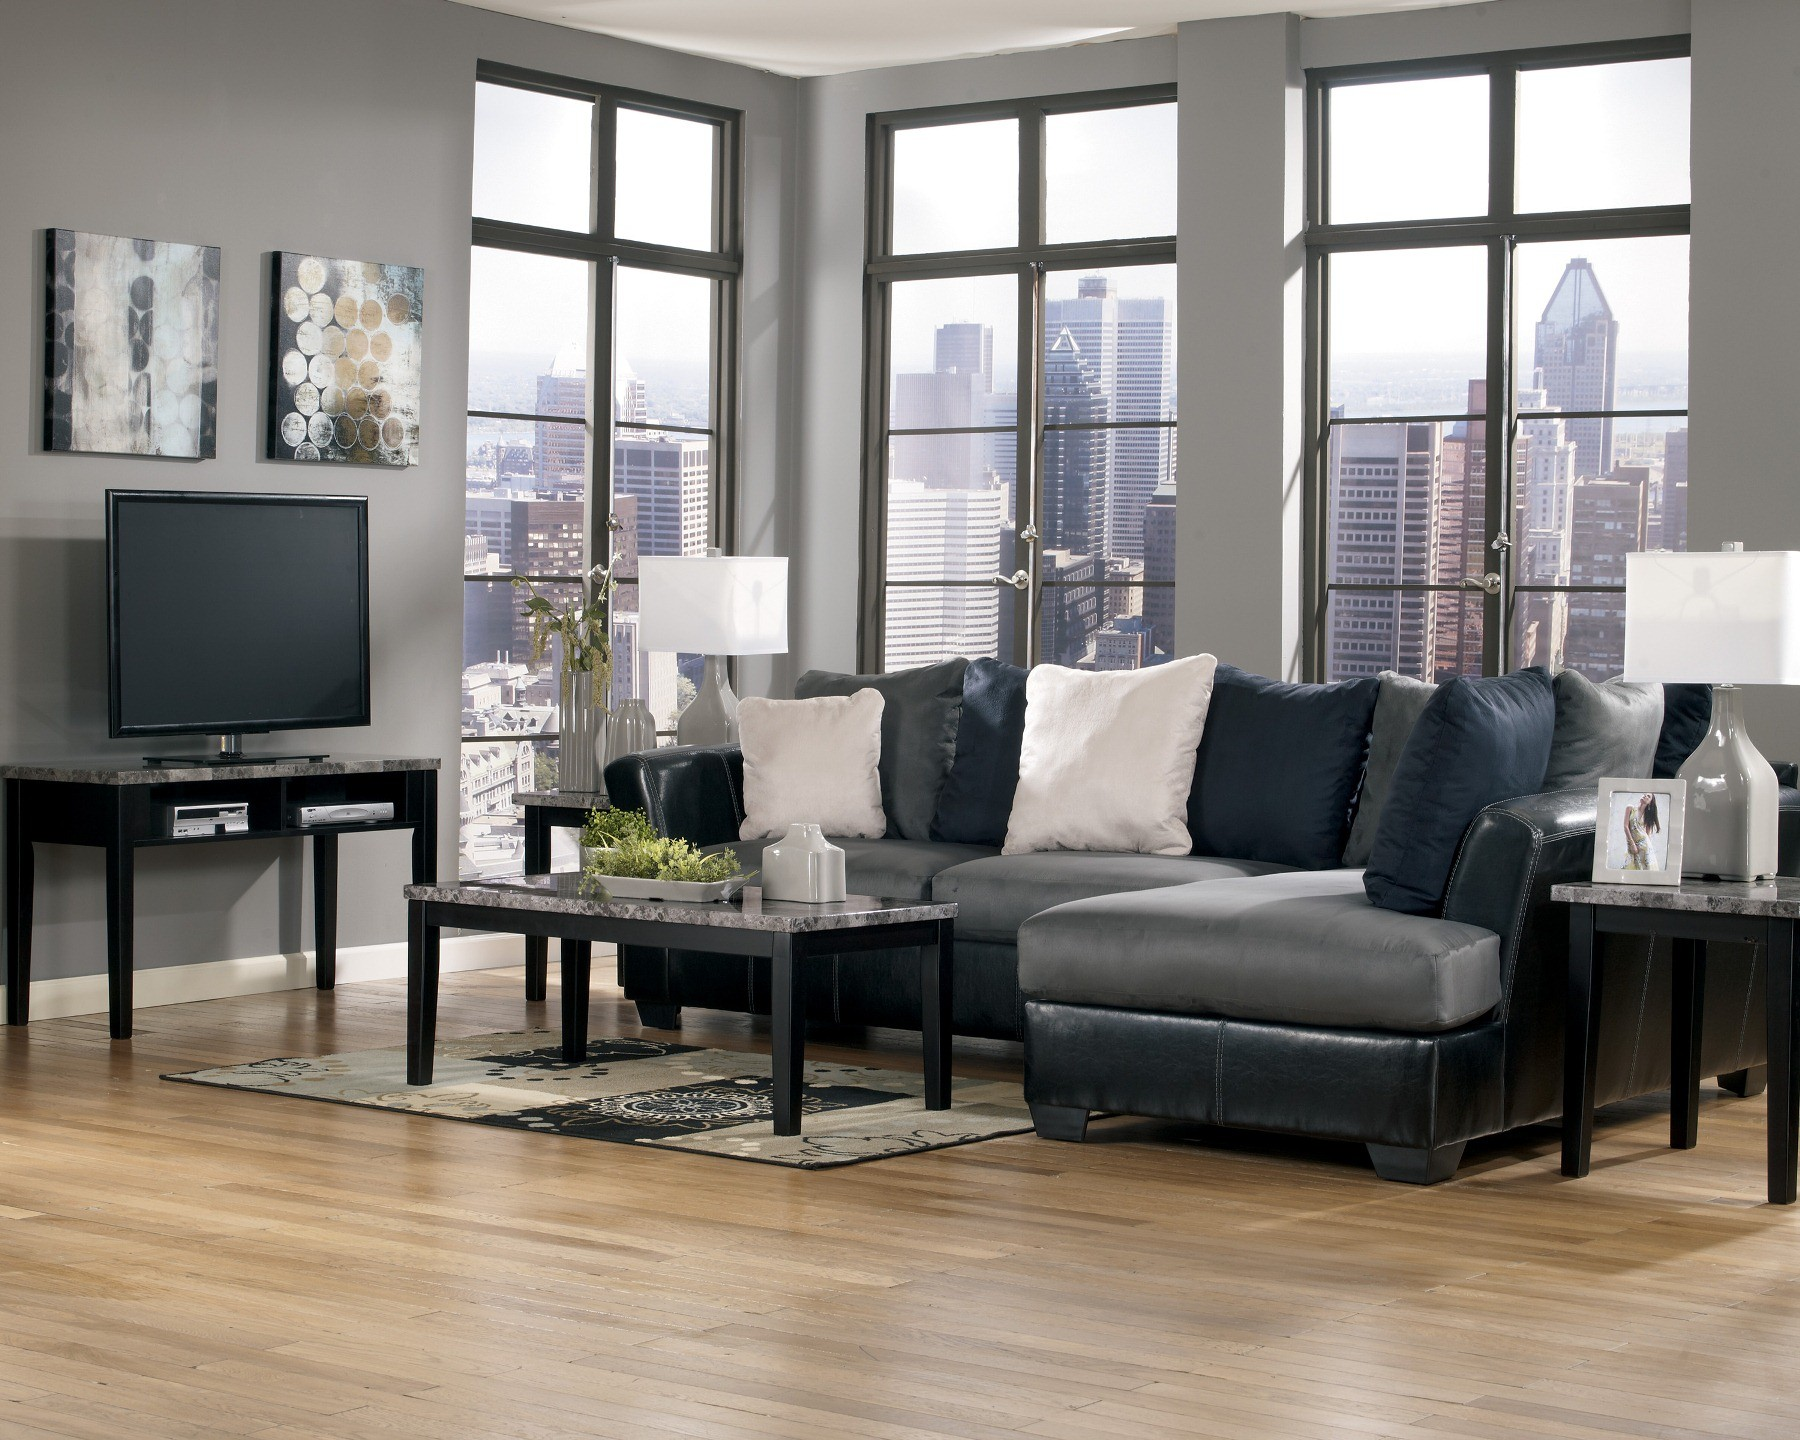 Masoli Cobblestone Right Arm Facing Sectional From Ashley 14200 66 17 Coleman Furniture